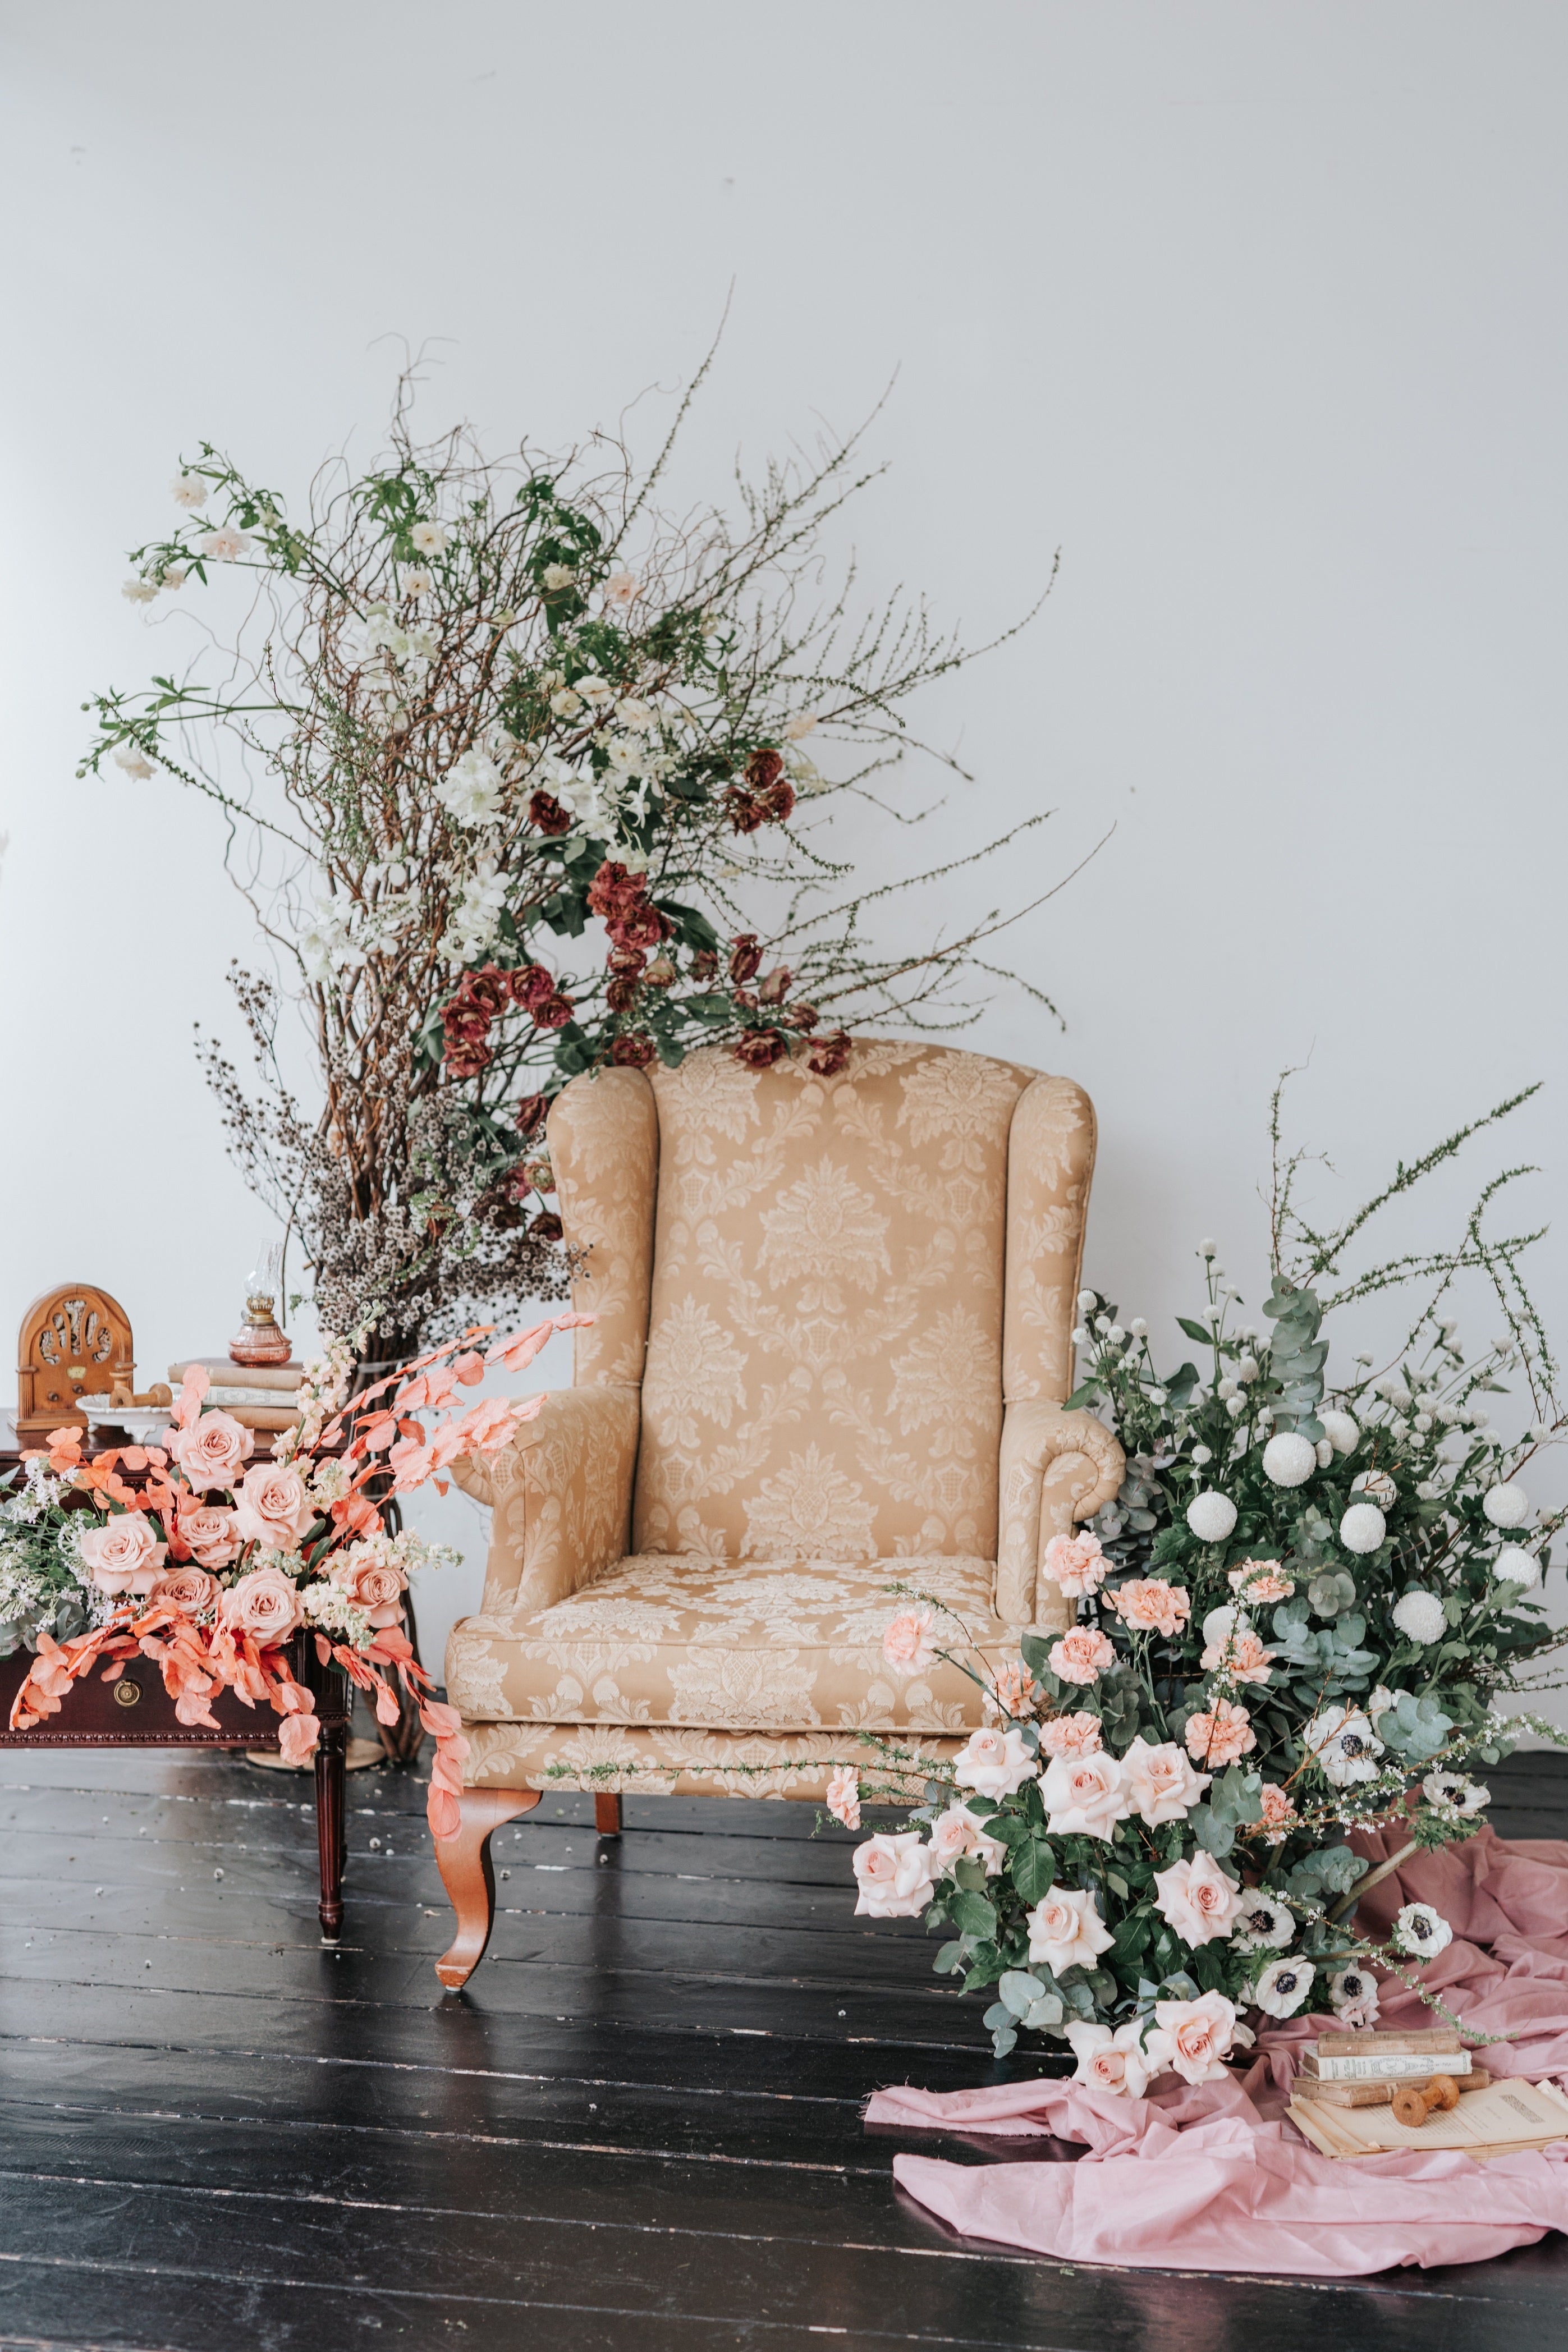 Gold vintage armchair surrounded by flower installation. Pink drapes styled on the floor